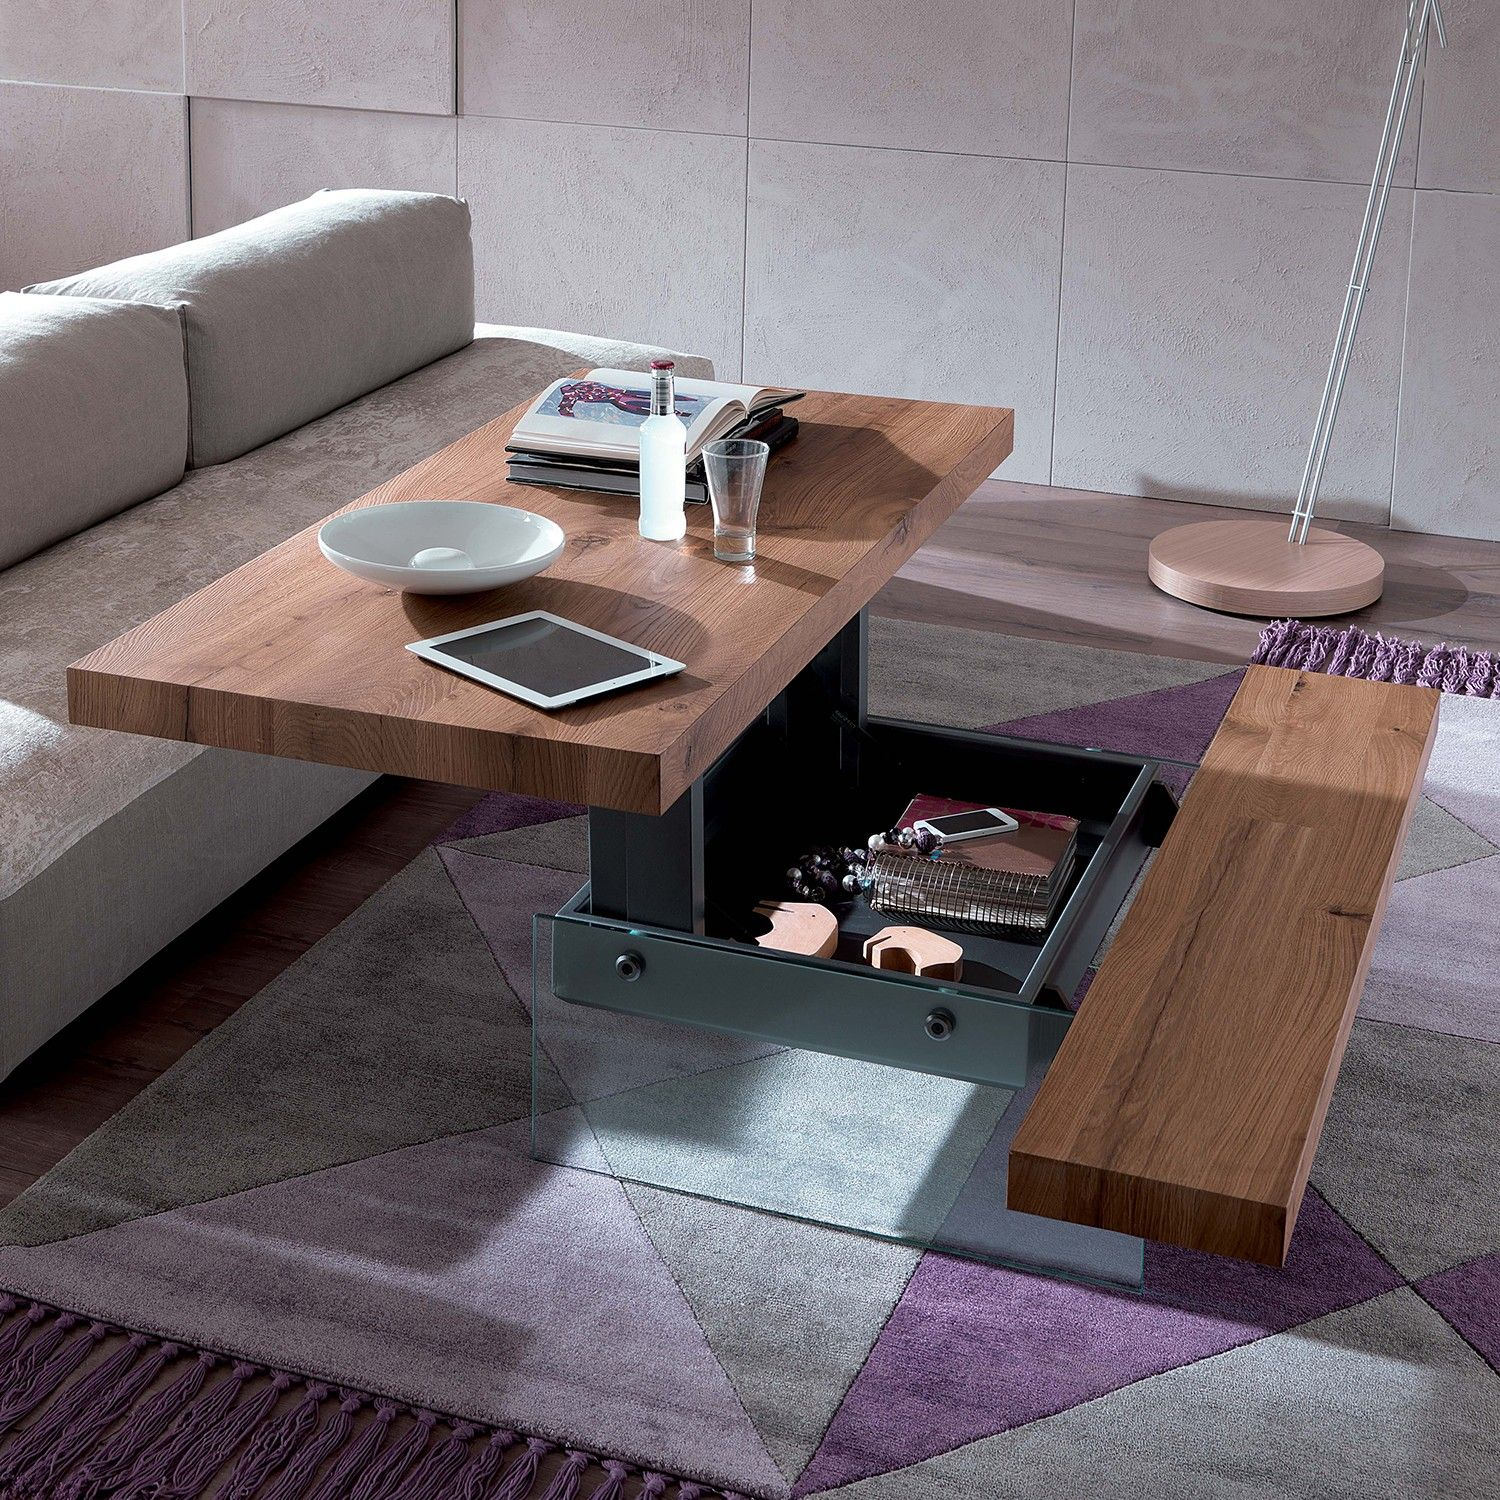 Ozzio Couchtisch E-motion Markus Transformable Coffee Table By Ozzio Italia With Seating And